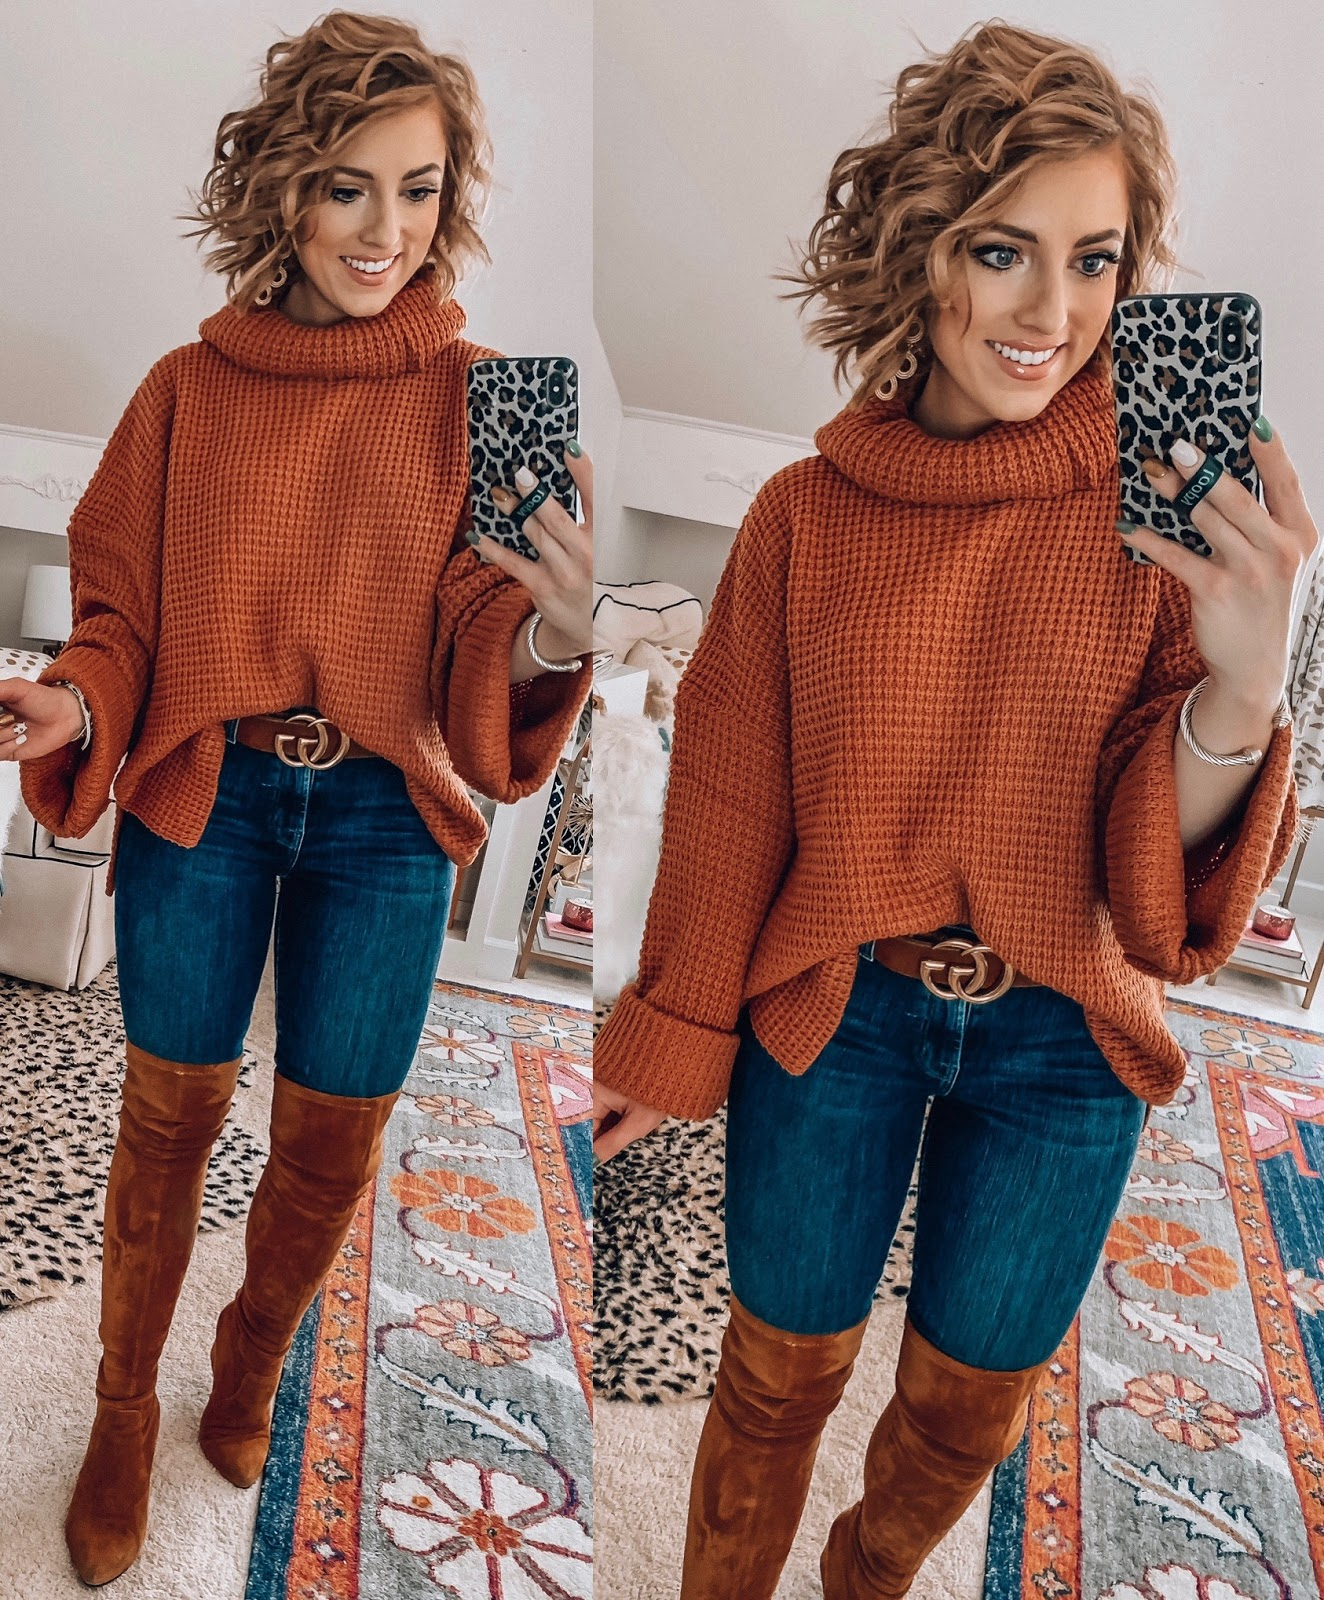 Recent Amazon Finds: Sweaters & Cardigans Edition - $34 Turtleneck Sweater - Something Delightful Blog #FallStyle #AmazonFashion #AffordableStyle